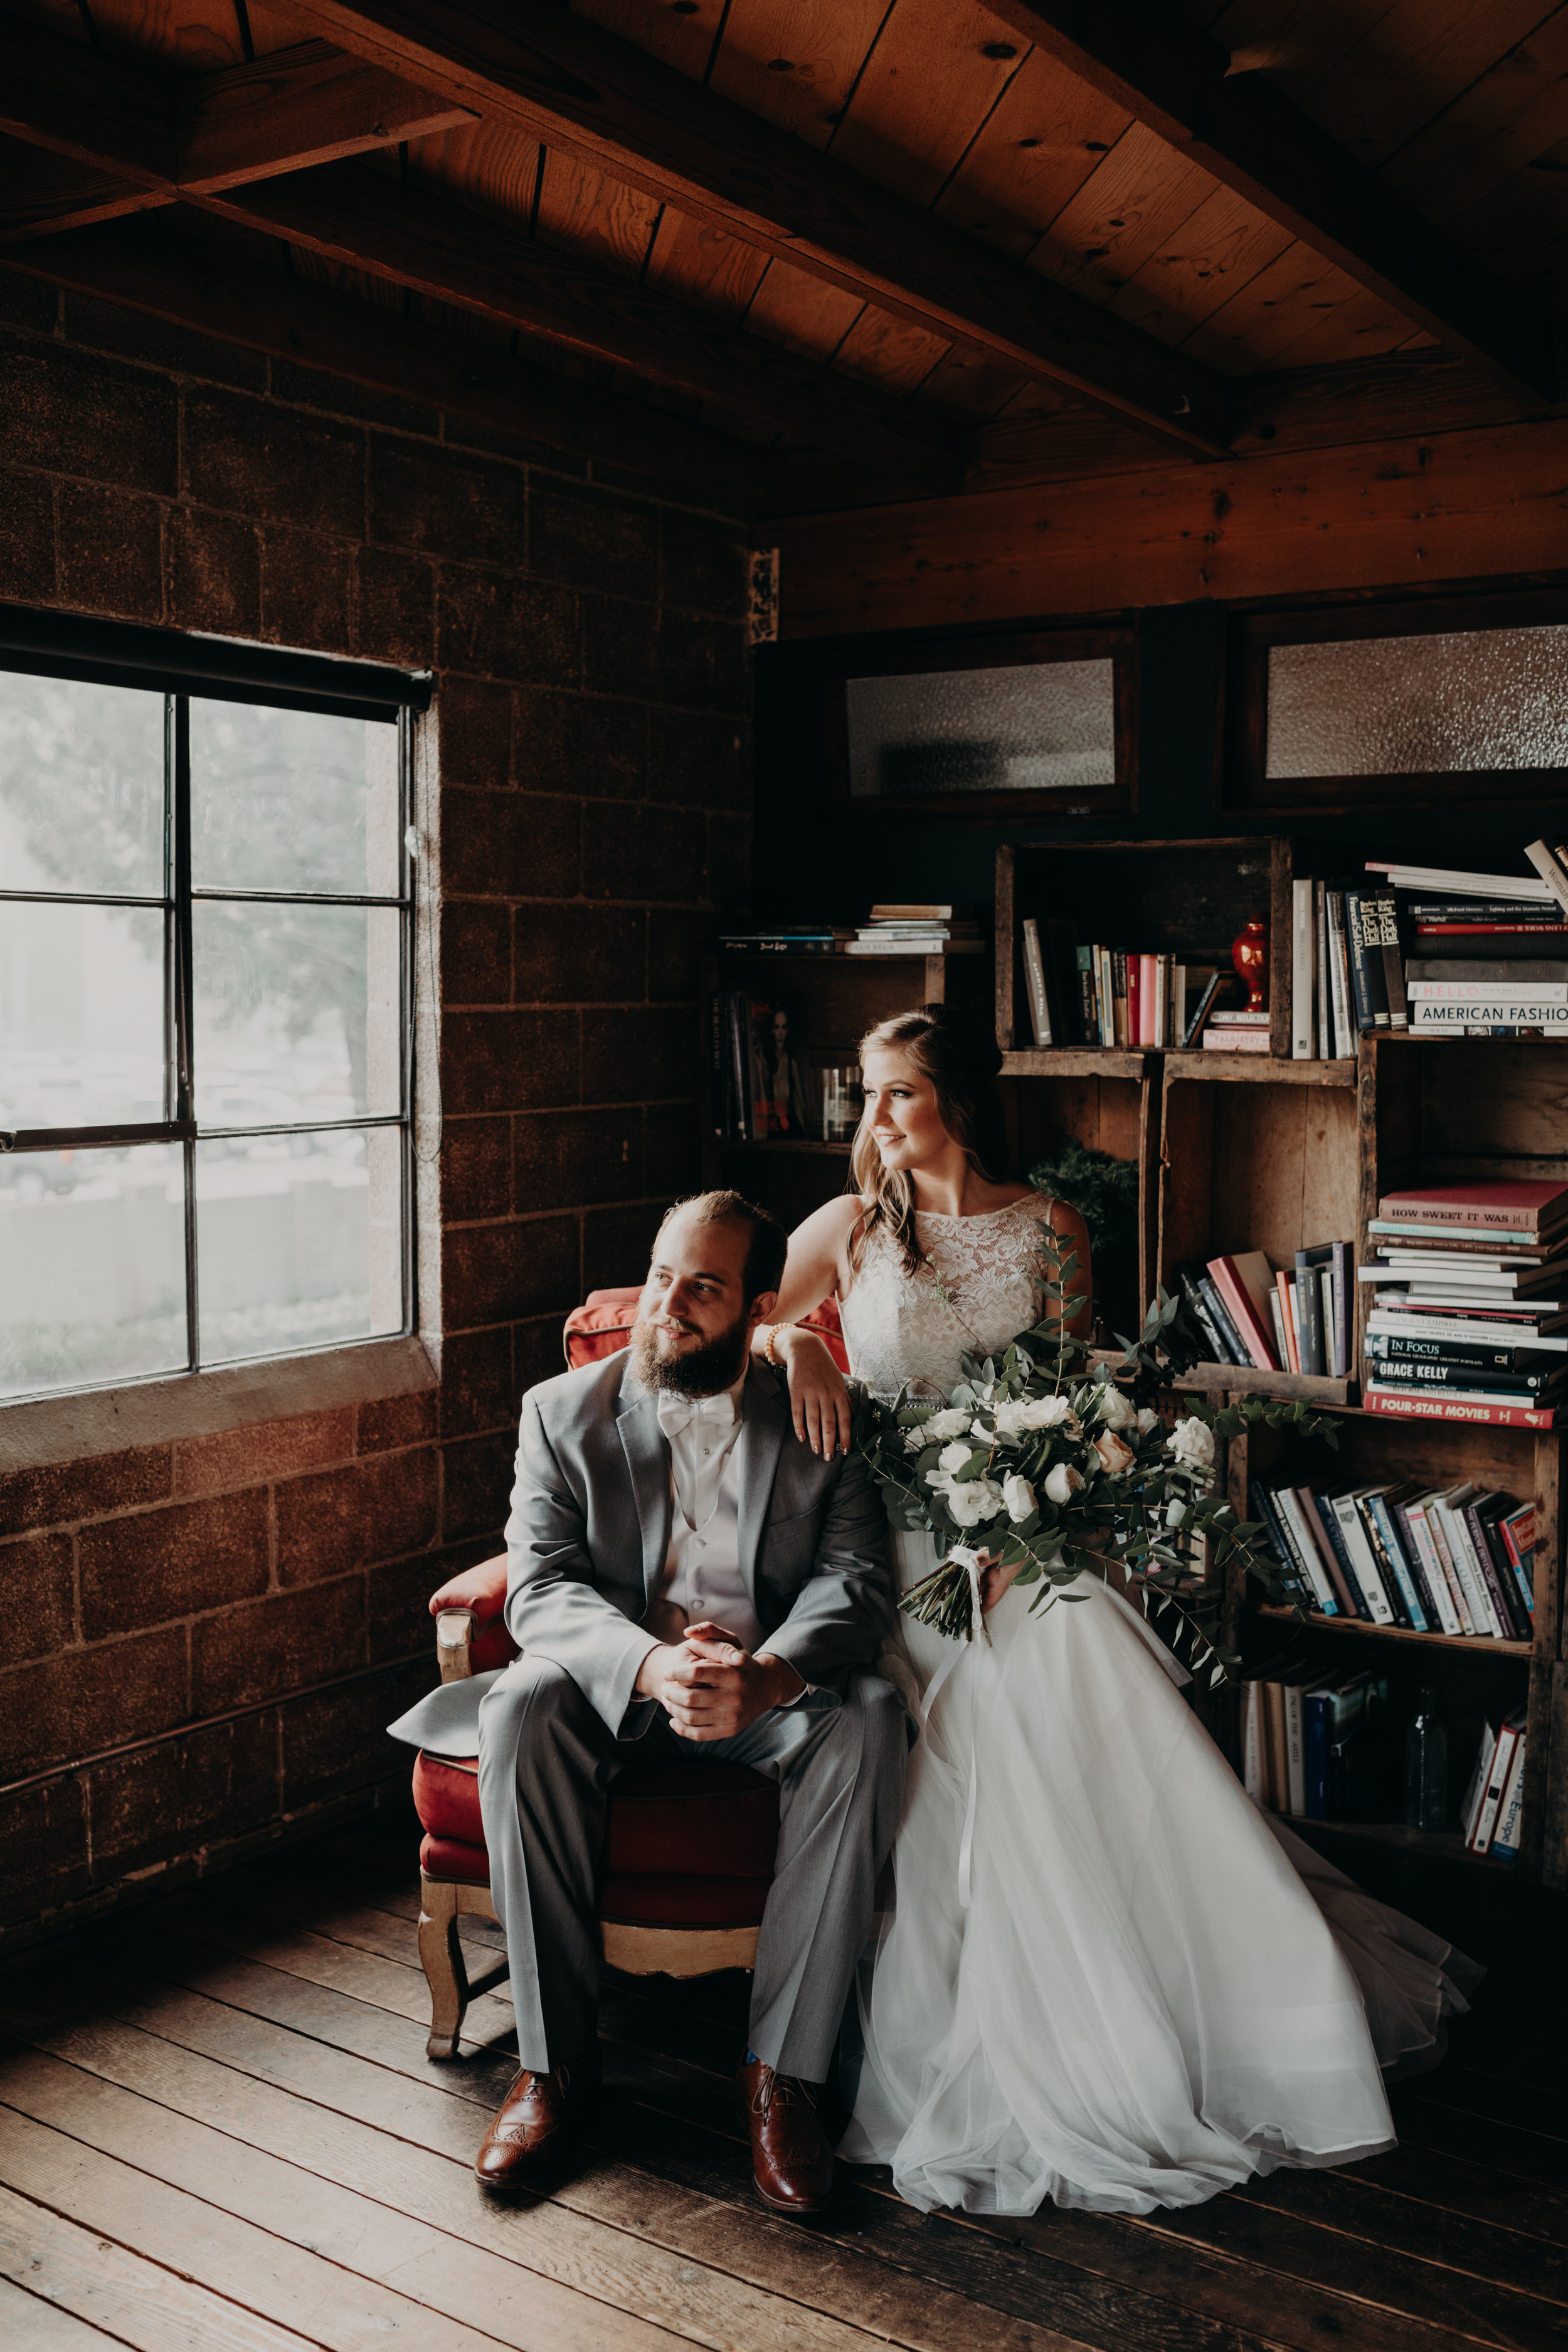 Smoky Hollow Studios Wedding Anne & Lewis Emily Magers Photography-420.jpg